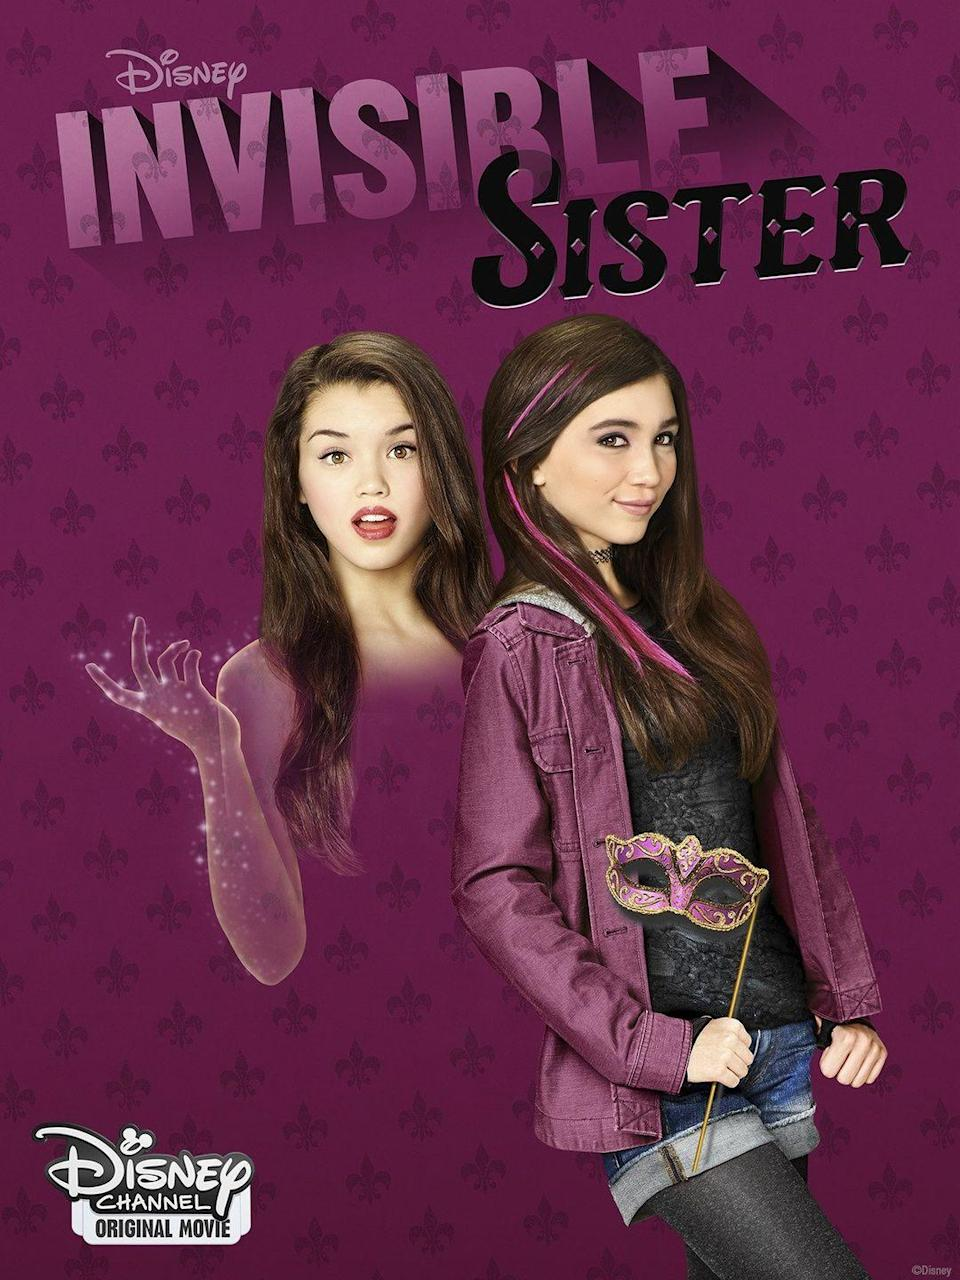 """<p>Molly and Cleo may be sisters, but they're total opposites. When Molly starts to go invisible thanks to Cleo's science experiment, Cleo must try to figure out how to reverse the affects before they turn permanent at midnight. </p><p><a class=""""link rapid-noclick-resp"""" href=""""https://go.redirectingat.com?id=74968X1596630&url=https%3A%2F%2Fwww.disneyplus.com%2Fmovies%2Finvisible-sister%2F4XLkQ95dRew5&sref=https%3A%2F%2Fwww.seventeen.com%2Fcelebrity%2Fmovies-tv%2Fg29354714%2Fnon-scary-halloween-movies%2F"""" rel=""""nofollow noopener"""" target=""""_blank"""" data-ylk=""""slk:Watch Now"""">Watch Now</a></p>"""